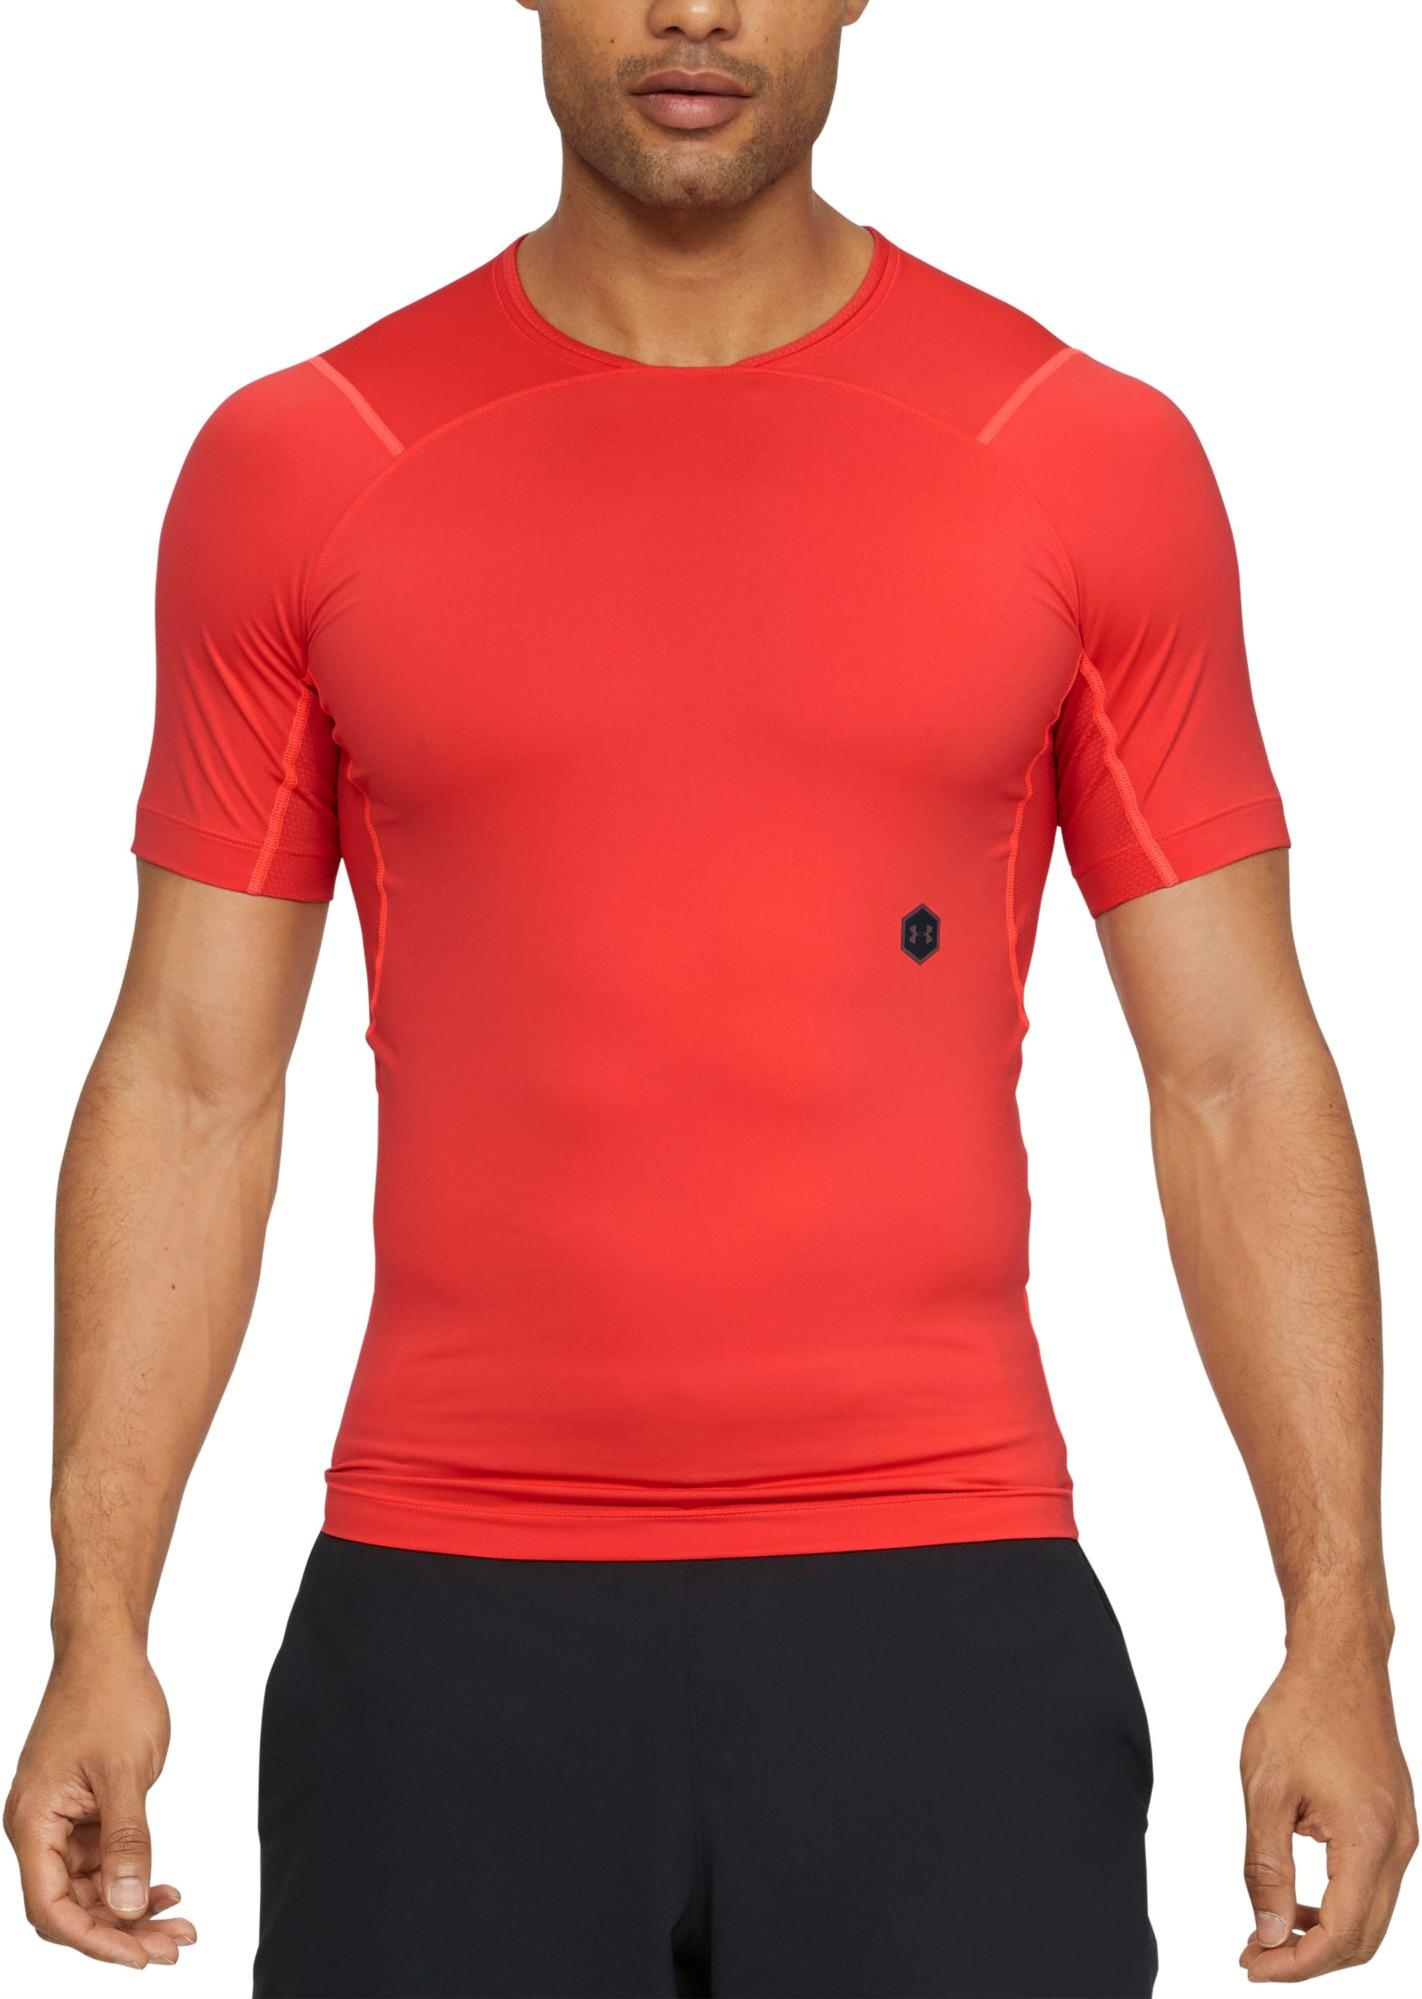 Kompressions-T-Shirt Under Armour UA Rush Compression SS